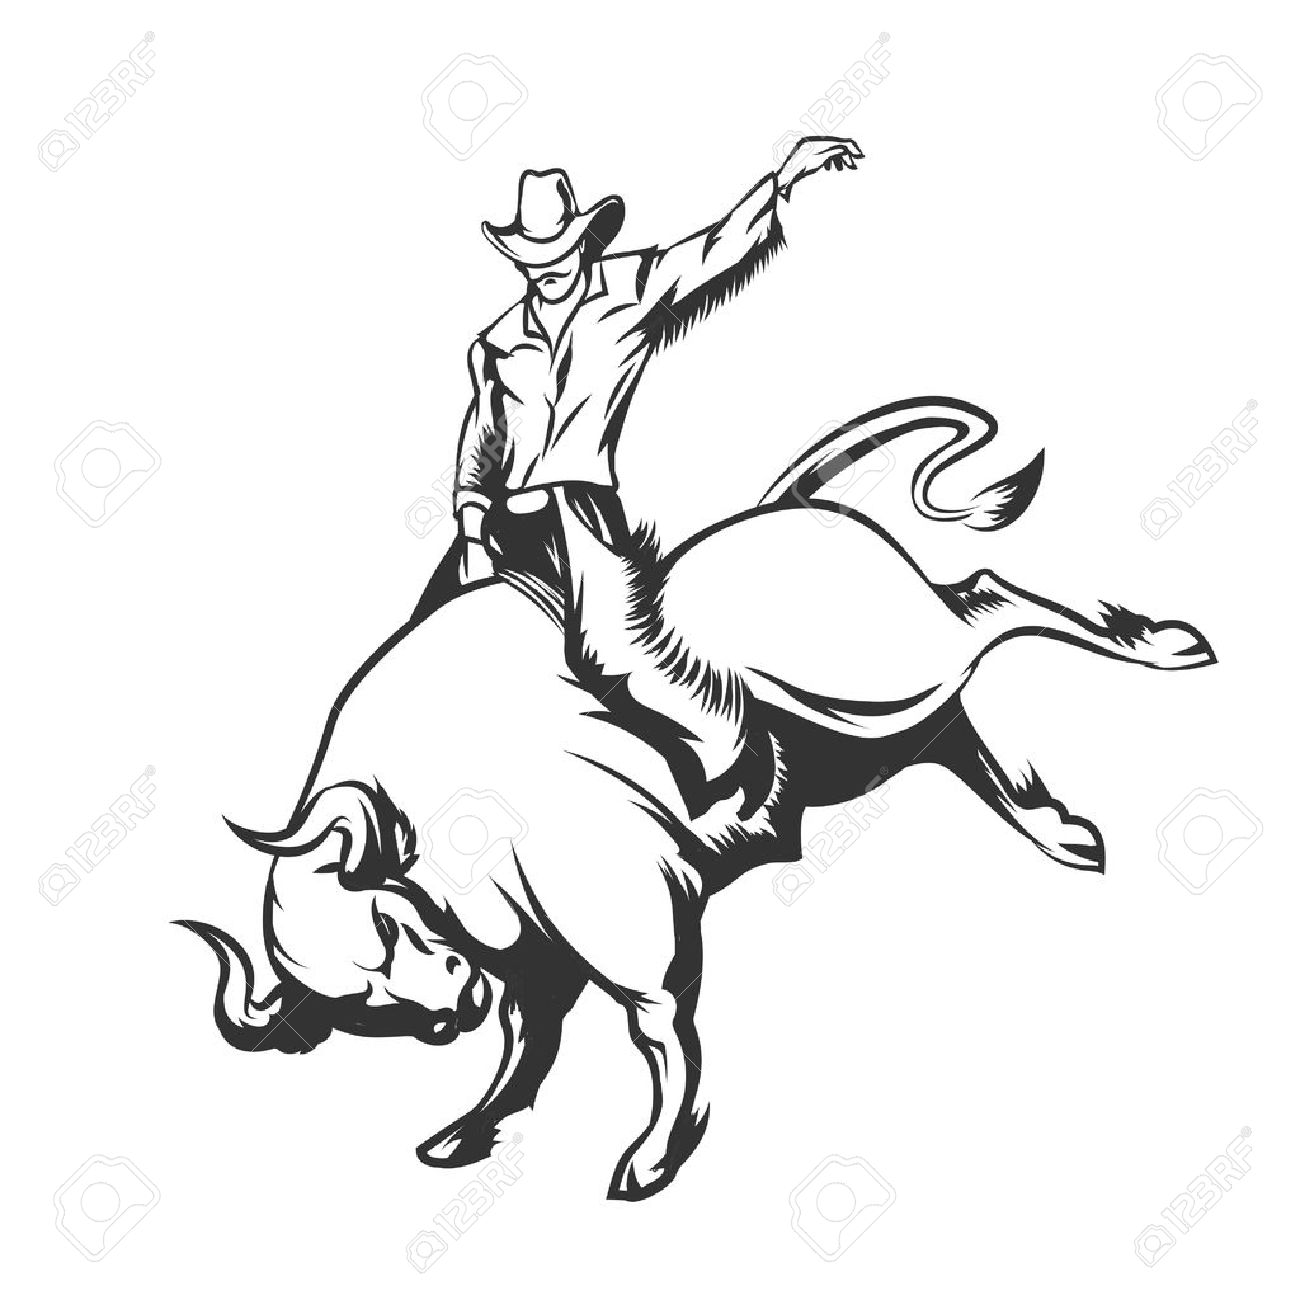 375 bull riding cliparts stock vector and royalty free bull riding rh 123rf com bull rider clip art Rodeo Clip Art